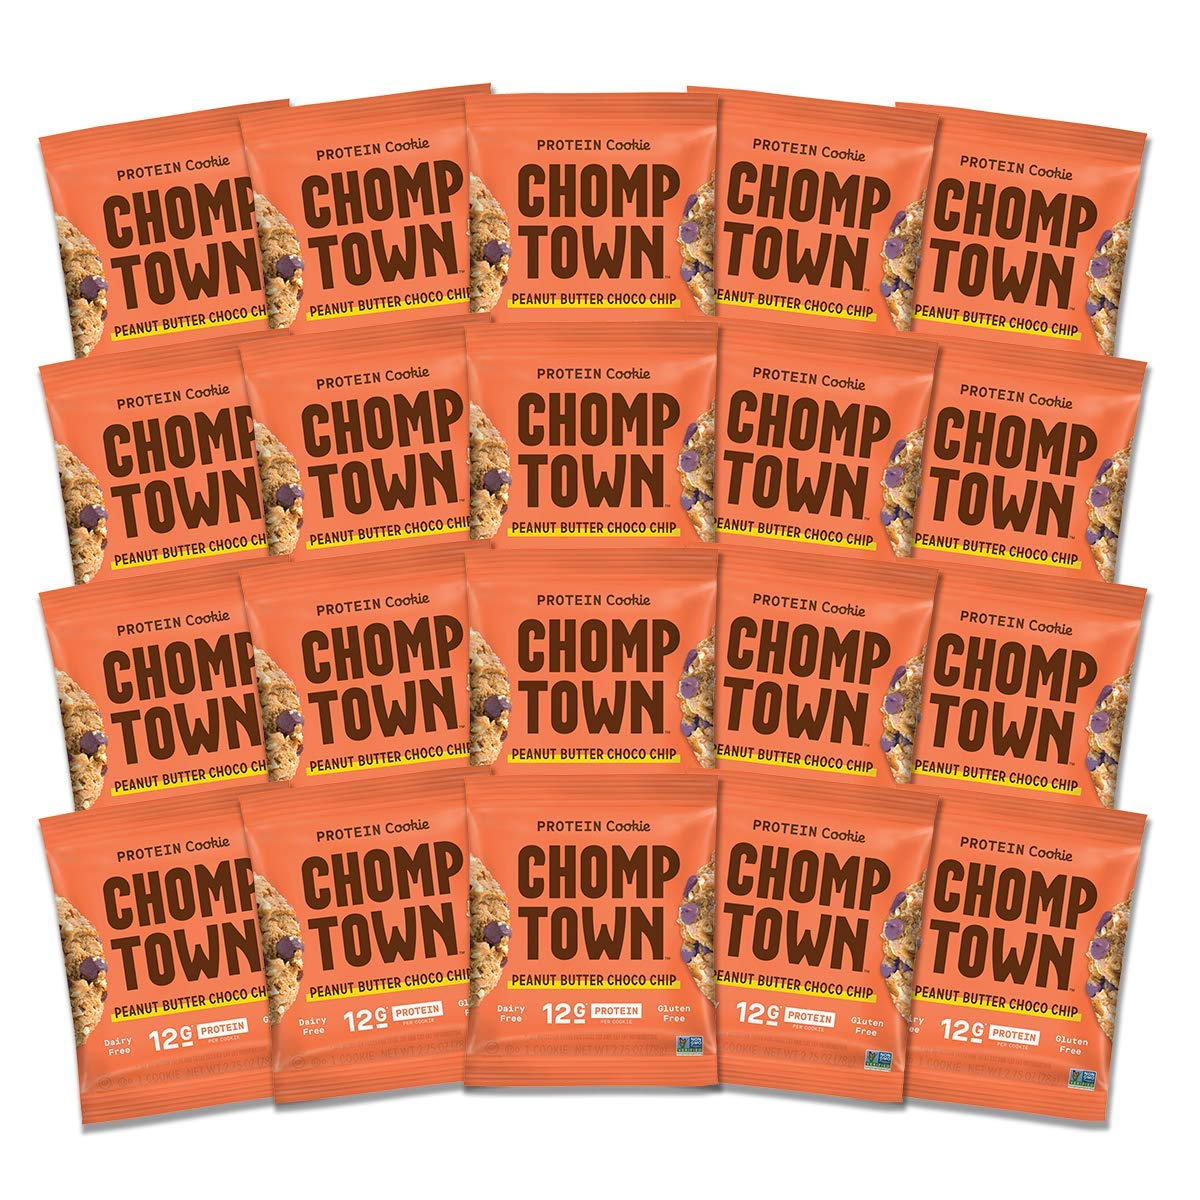 Chomptown | Peanut Butter Chocolate Chip | High-Protein Cookie | 12g Protein | Gluten-Free | Dairy-Free | Non-GMO | Fair Trade | 2.75 oz (Pack of 20) by Chomptown